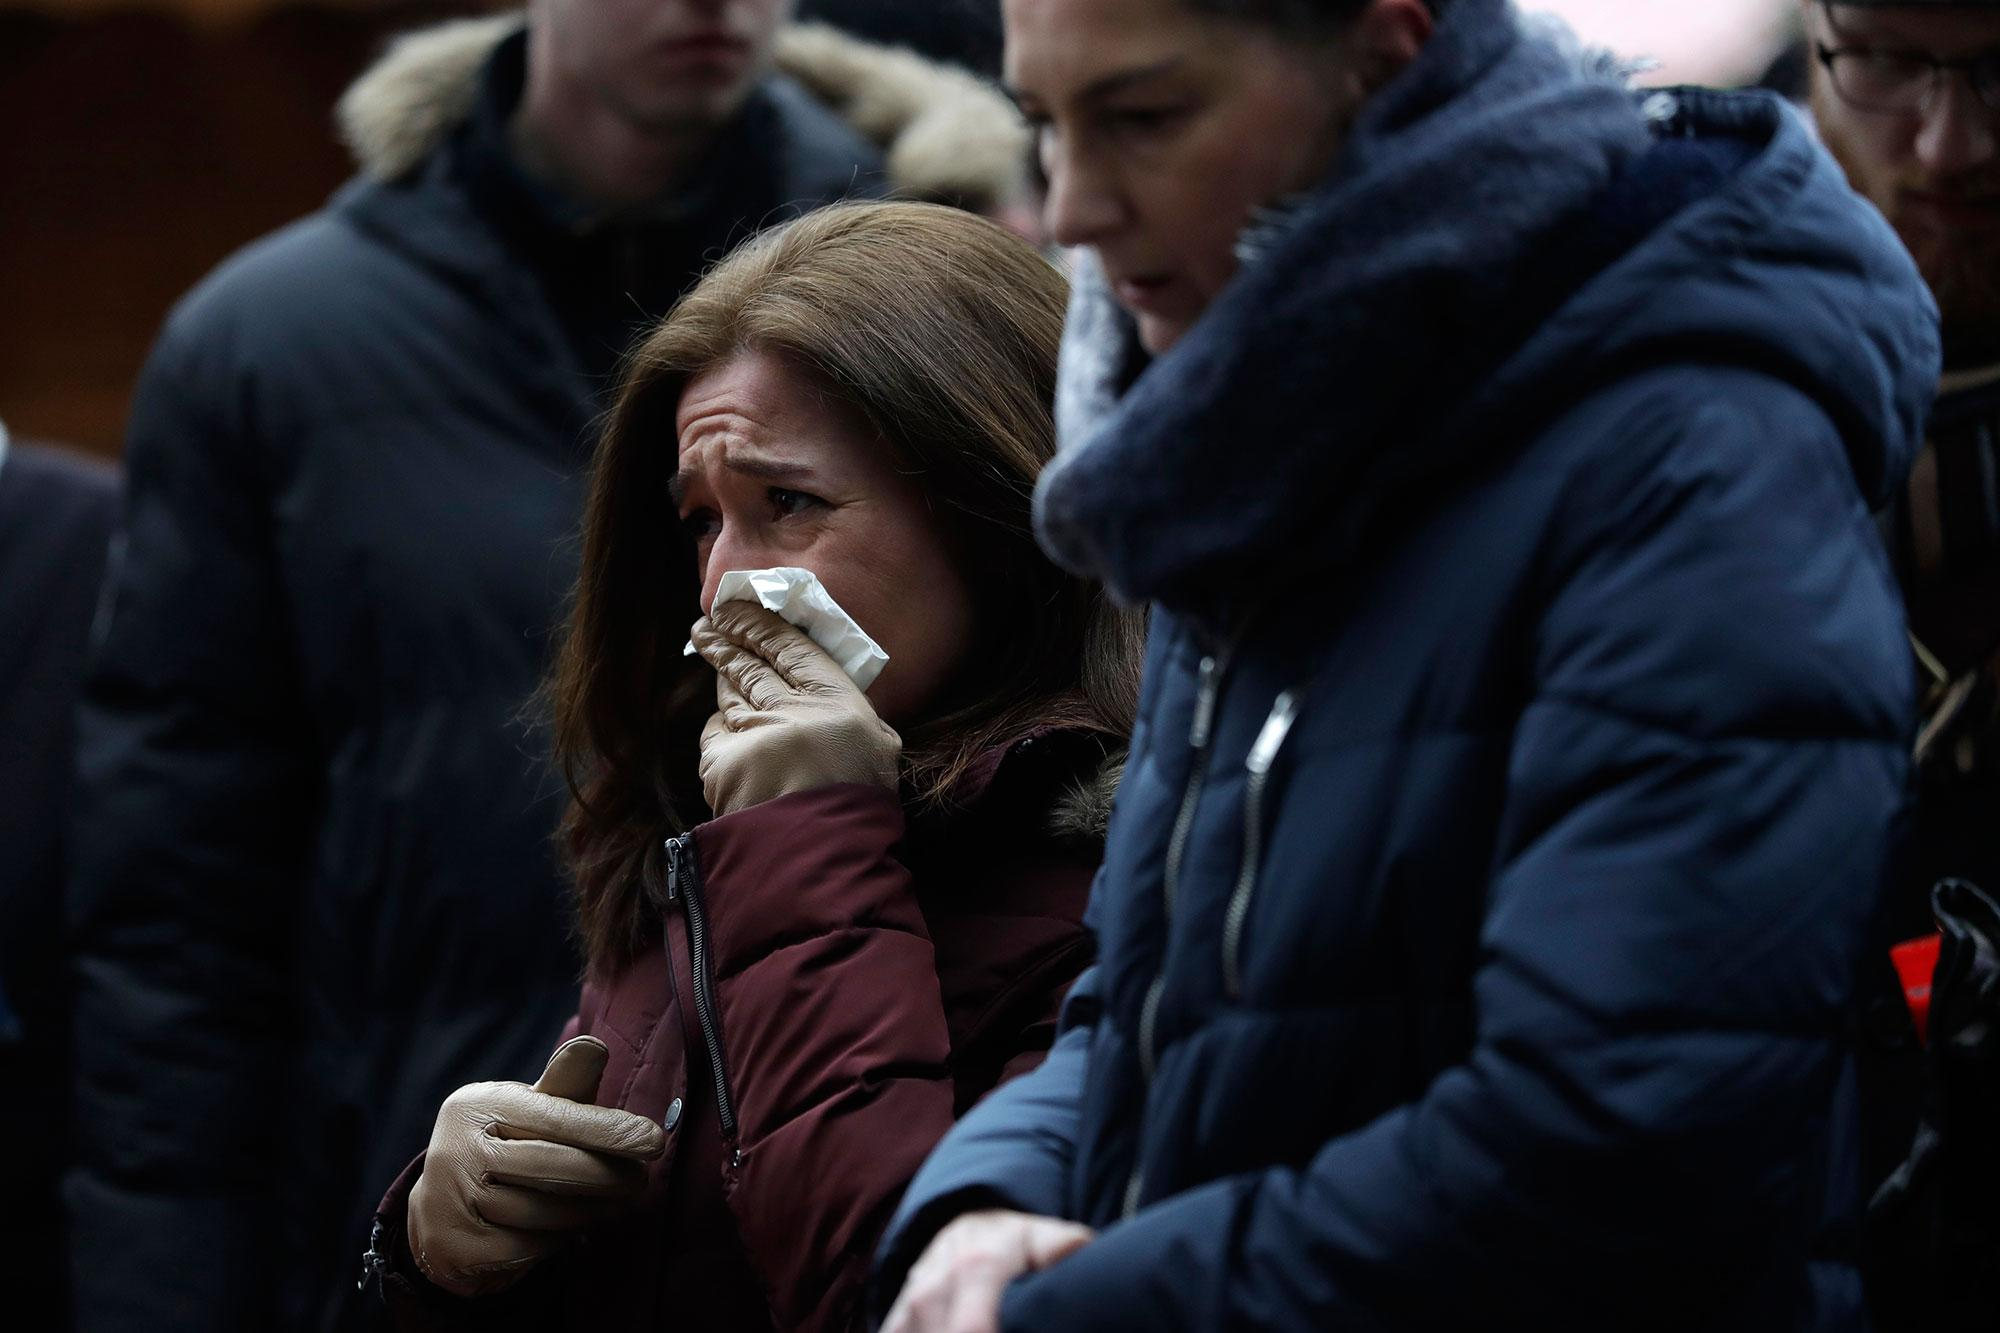 <p>People react near the crime scene in Berlin, Germany, Tuesday, Dec. 20, 2016, the day after a truck ran into a crowded Christmas market and killed several people. (AP Photo/Matthias Schrader) </p>